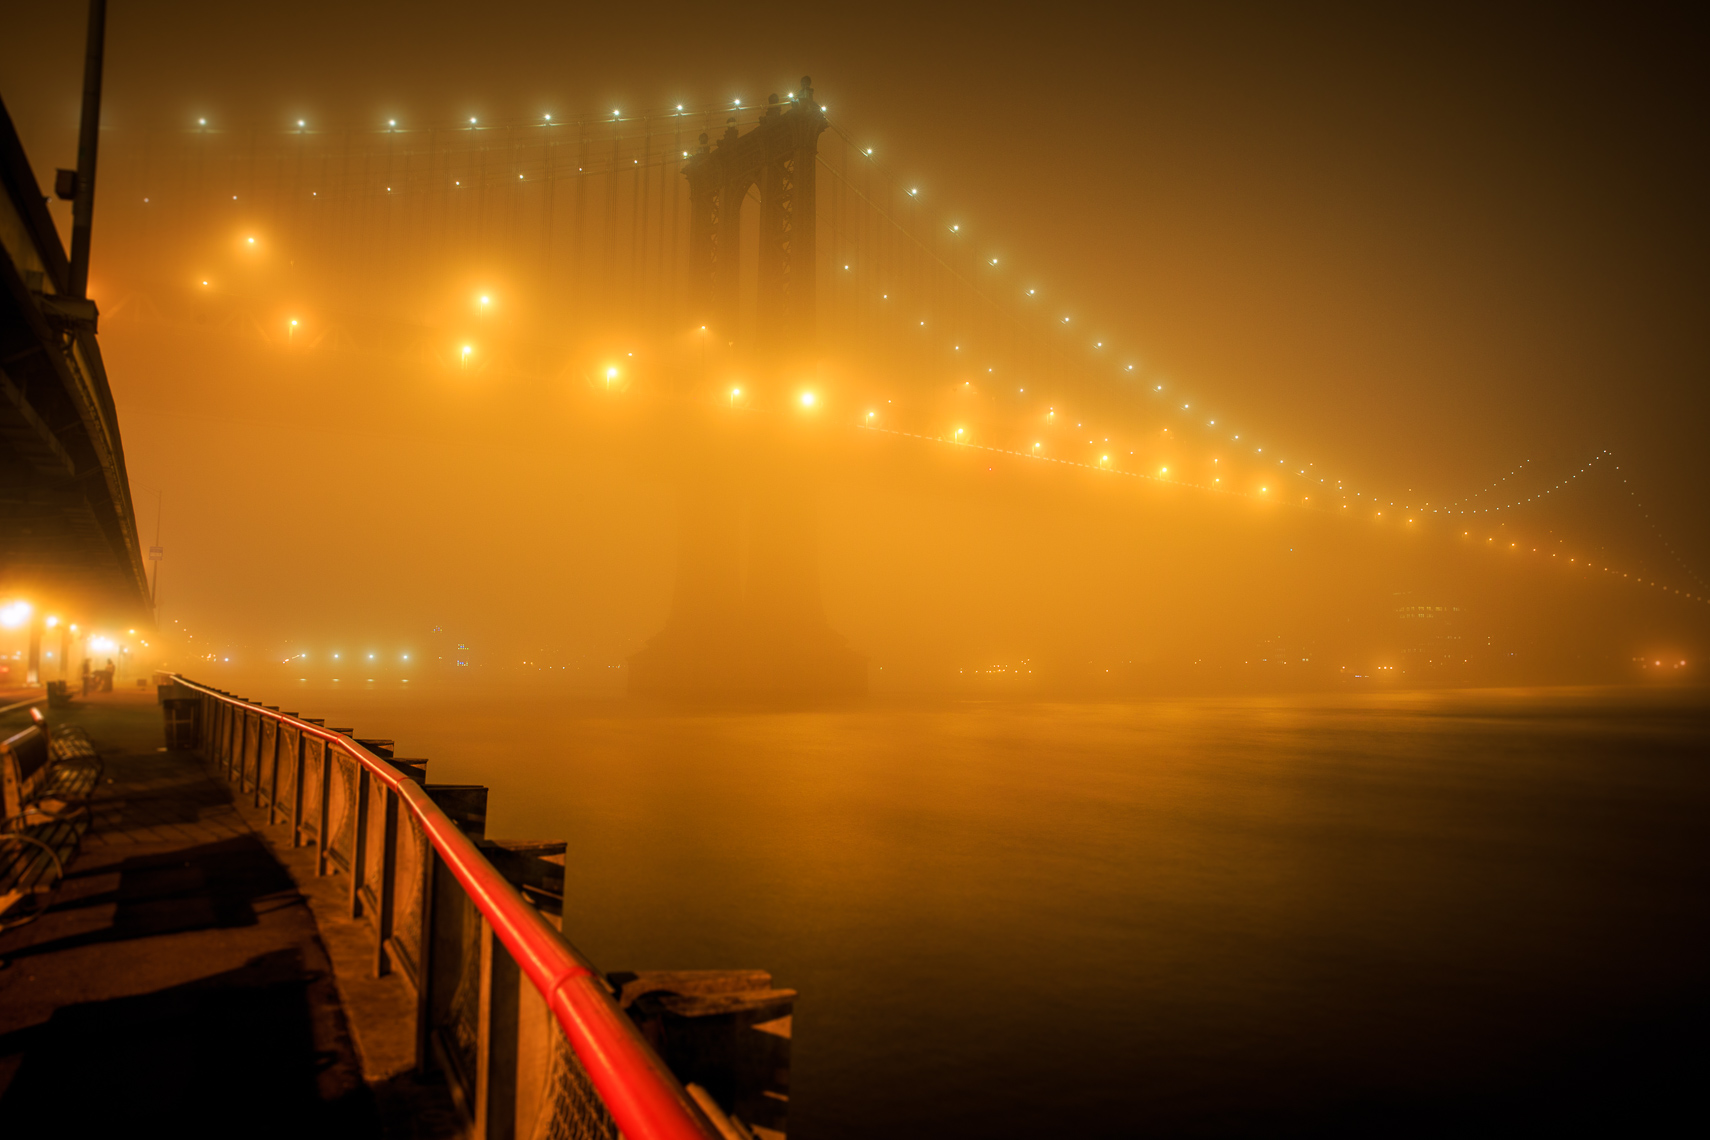 The Manhattan Bridge and Brooklyn Bridge in Dense Fog